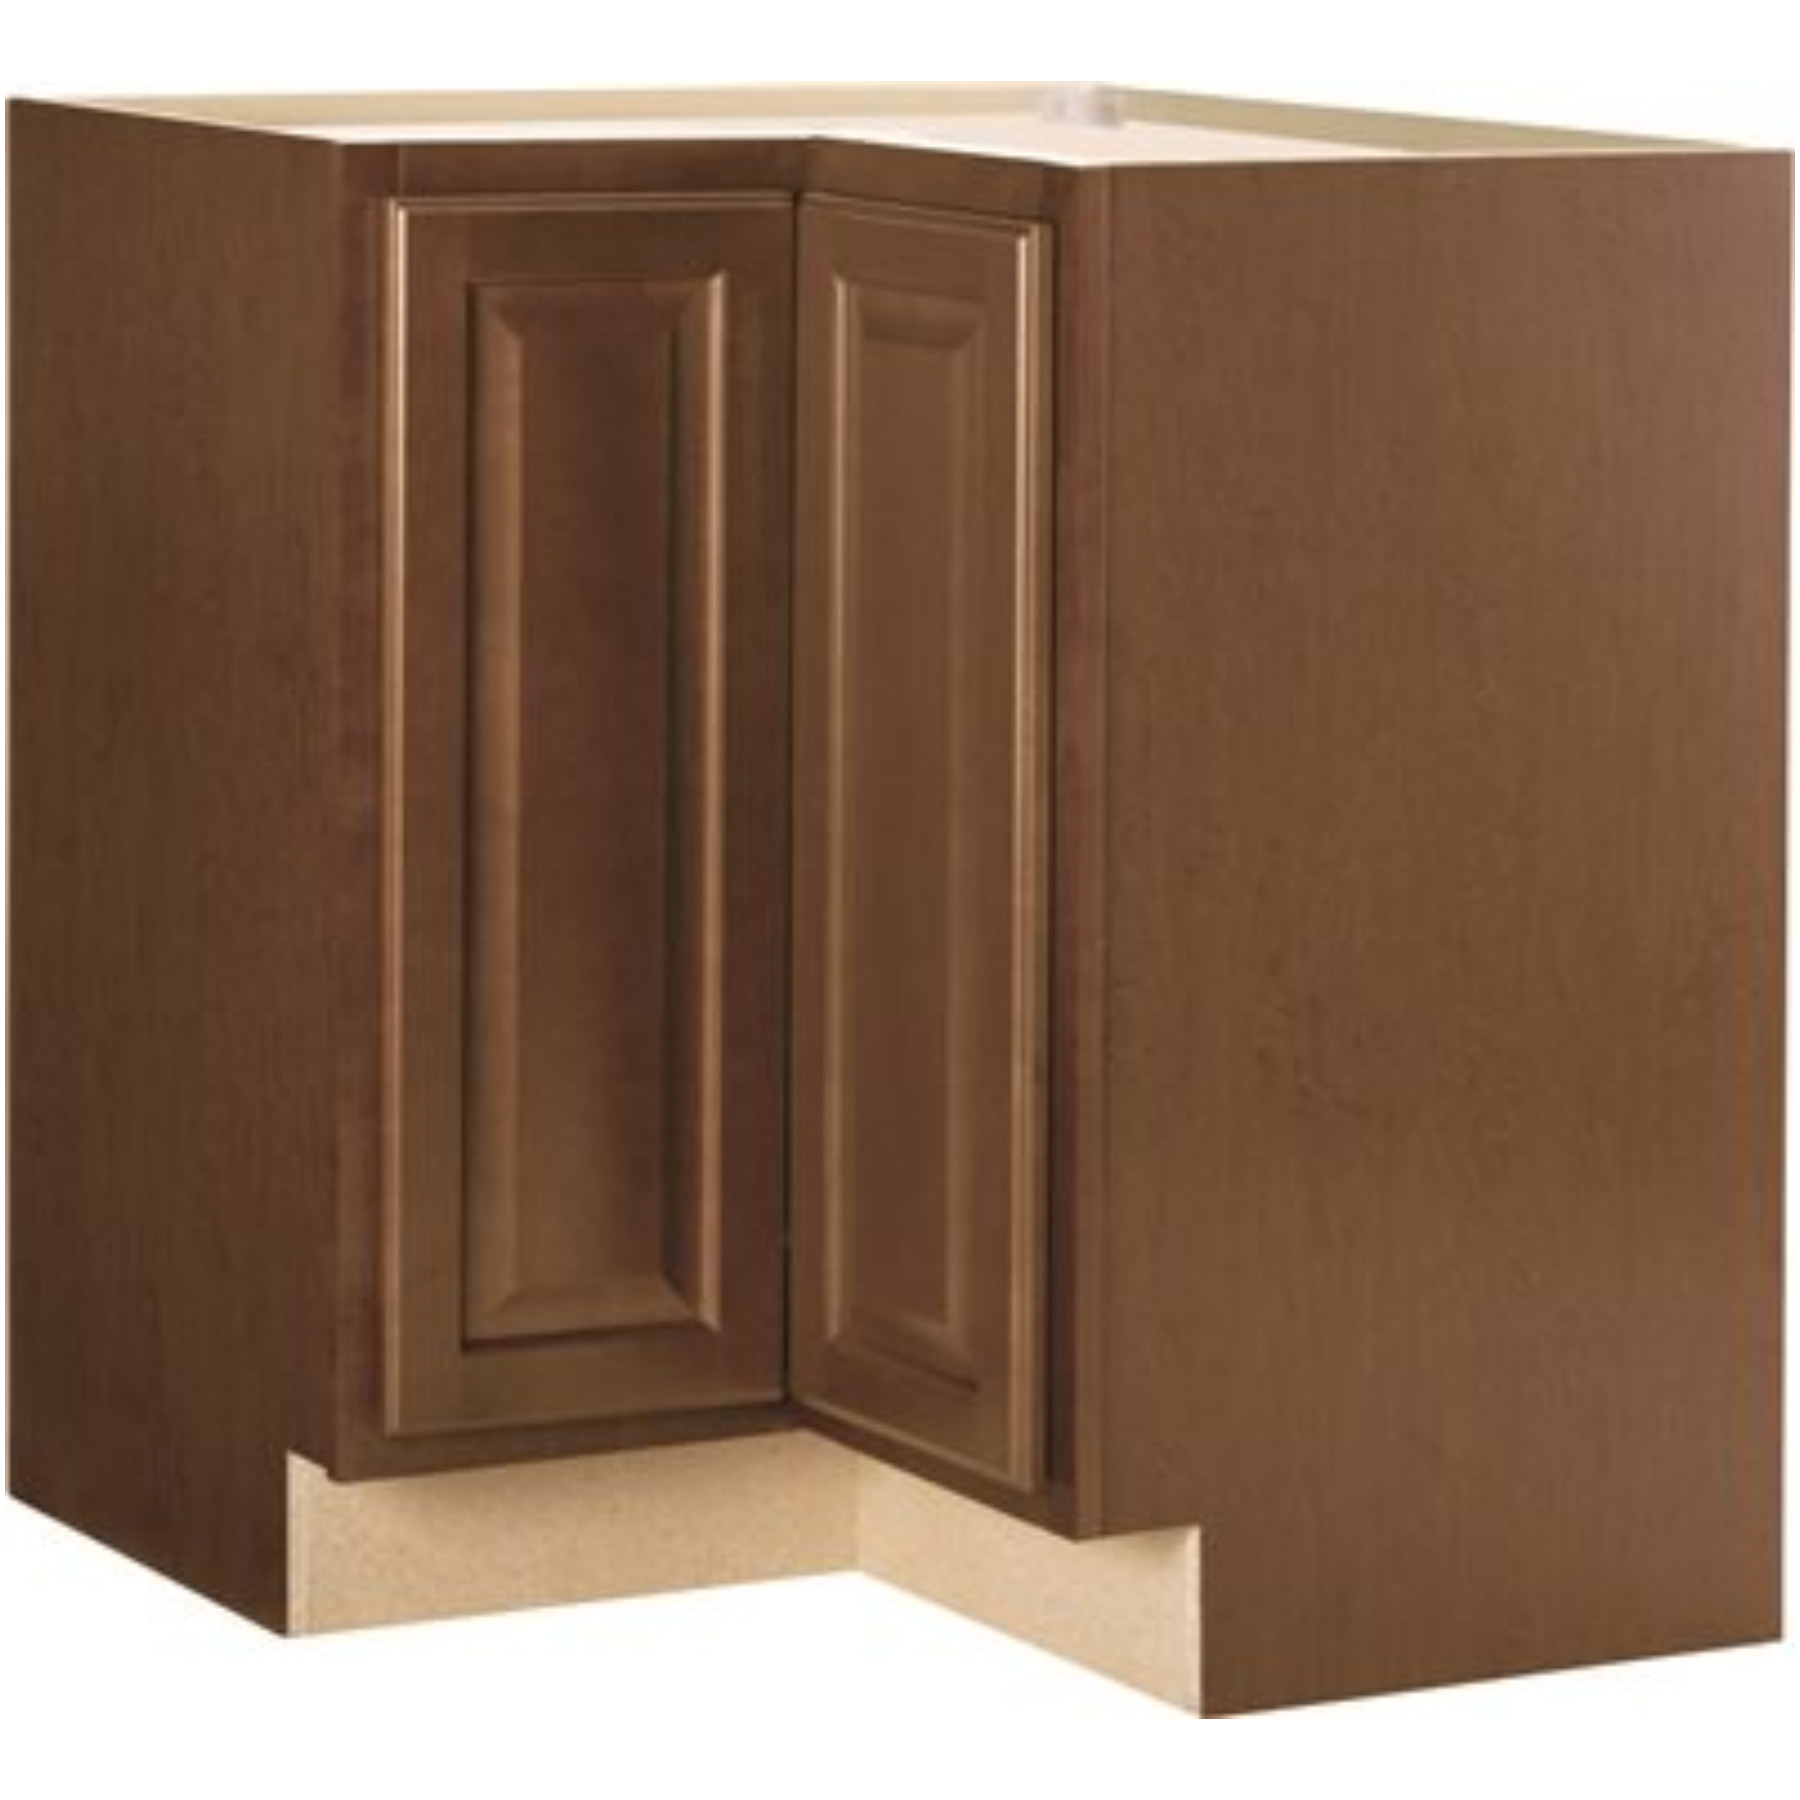 RSI HOME PRODUCTS HAMILTON BASE CABINET, FULLY ASSEMBLED, RAISED PANEL, CAFE, WITH LAZY SUSAN, 36X34-1/2X24 IN.